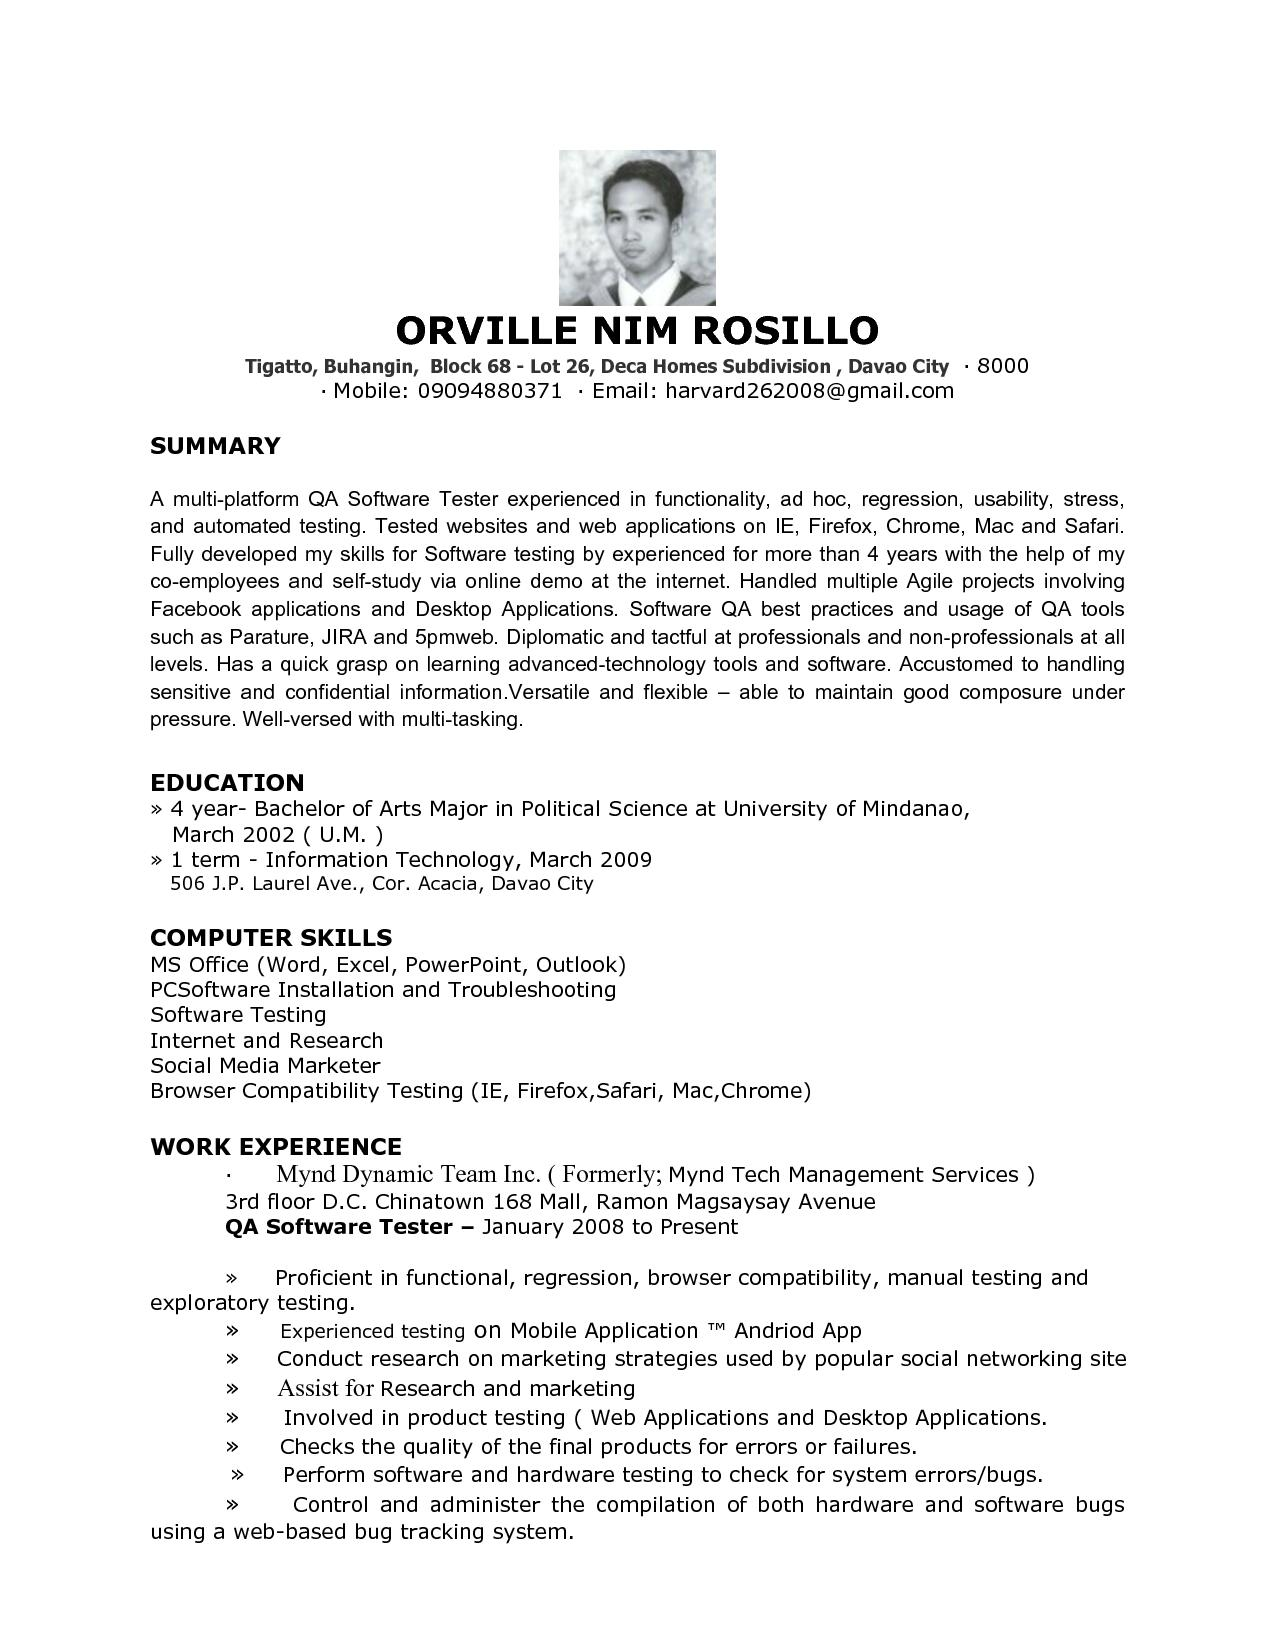 32 Beautiful Entry Level Software Engineer Resume with Gallery